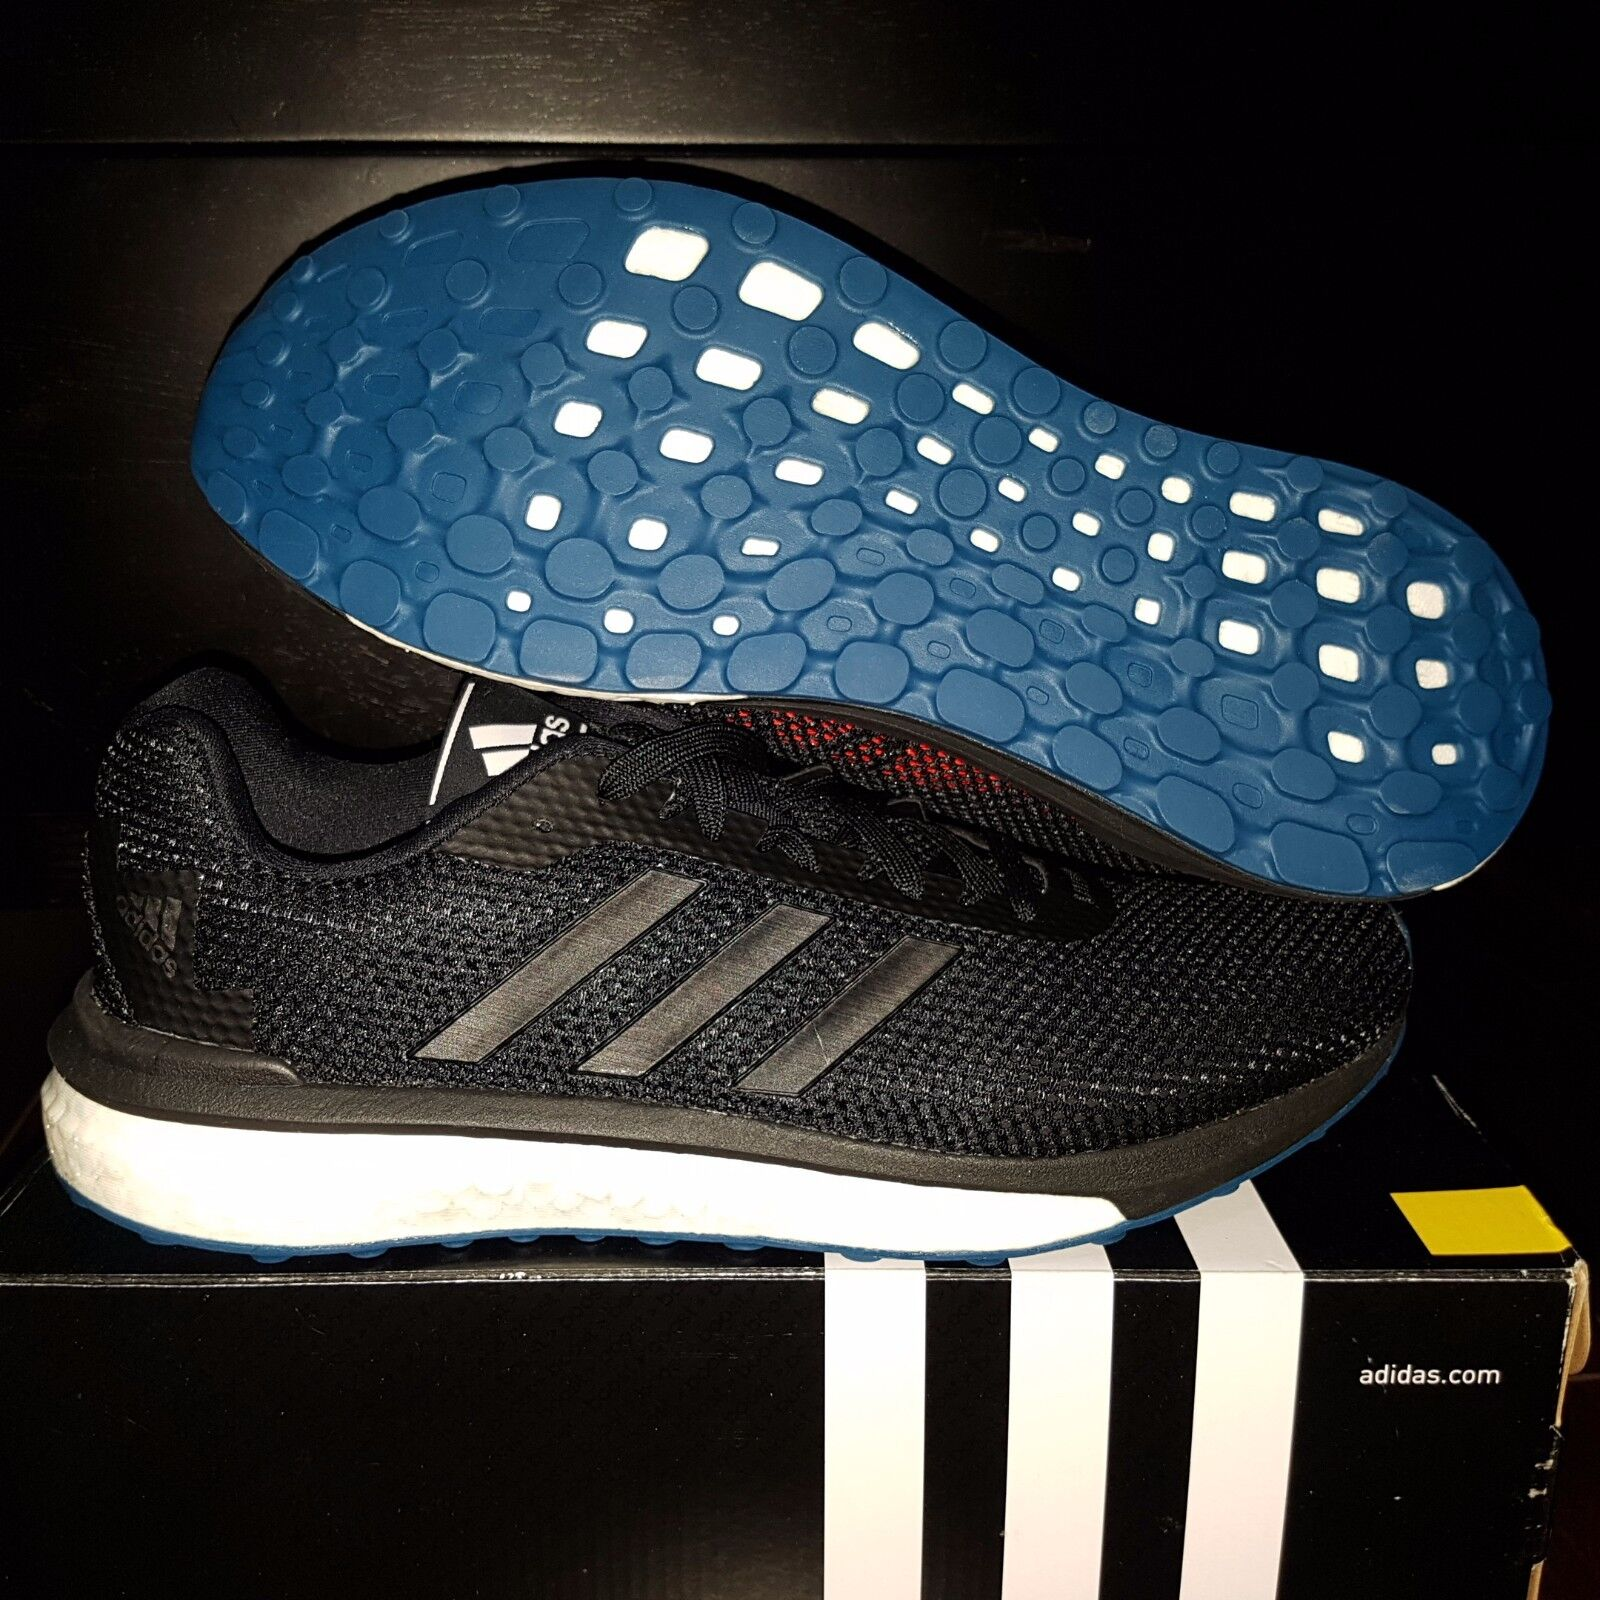 best authentic a782b 75860 Adidas Boost Running shoes Mens 8 US NEW 7.5 UK Ultraboost Pureboost  Training